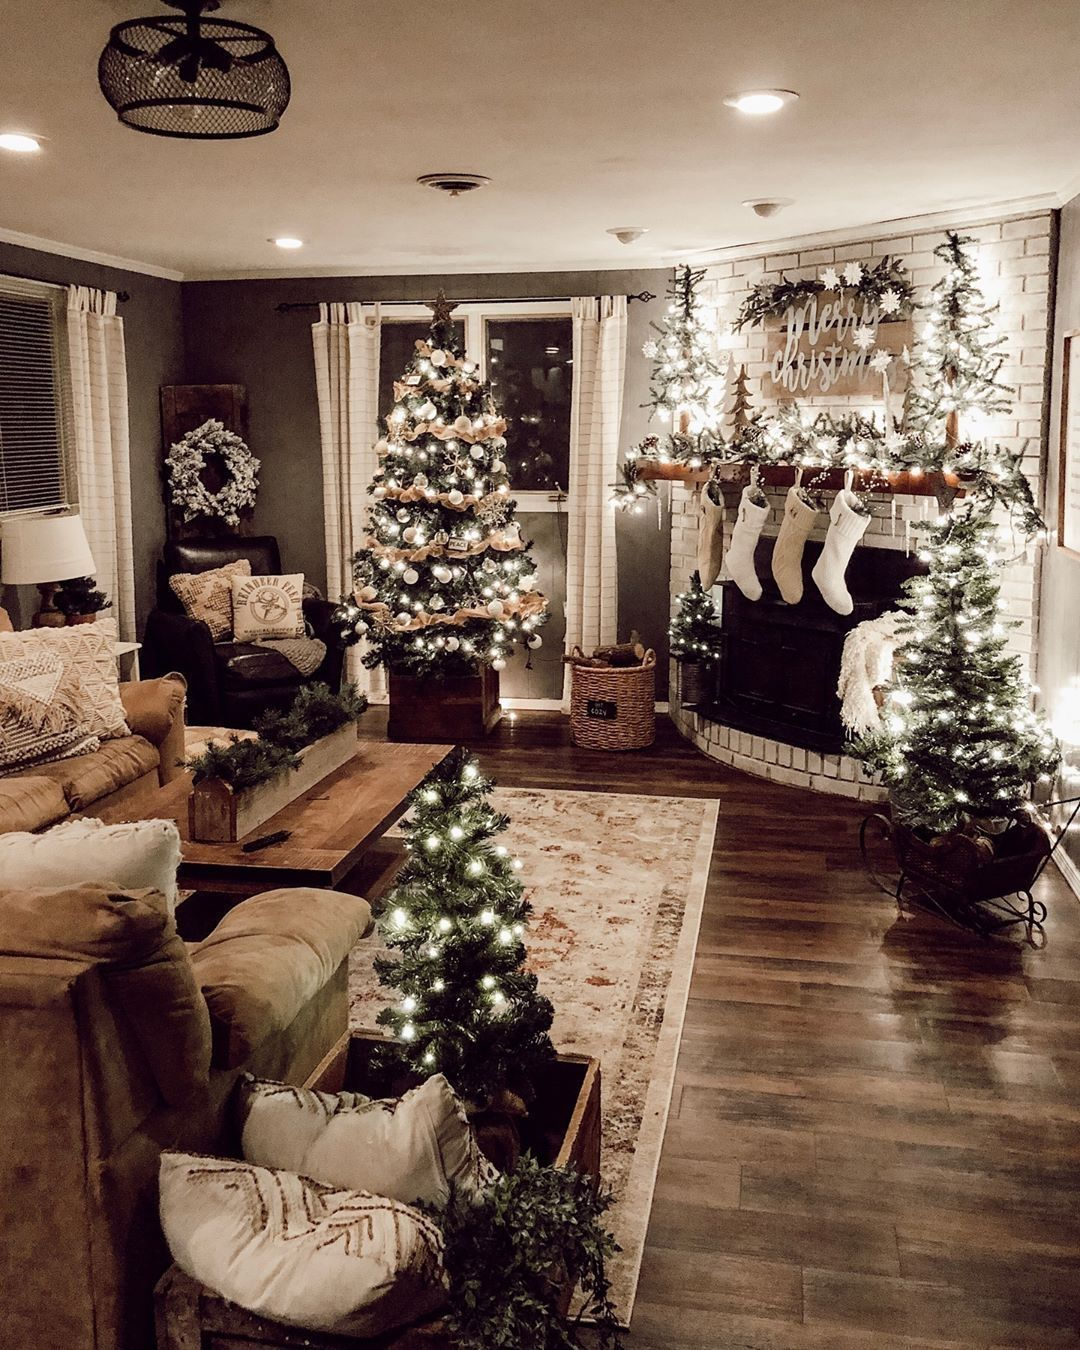 44 Inspiring Decoration Ideas for Holiday Event #homedecorideas